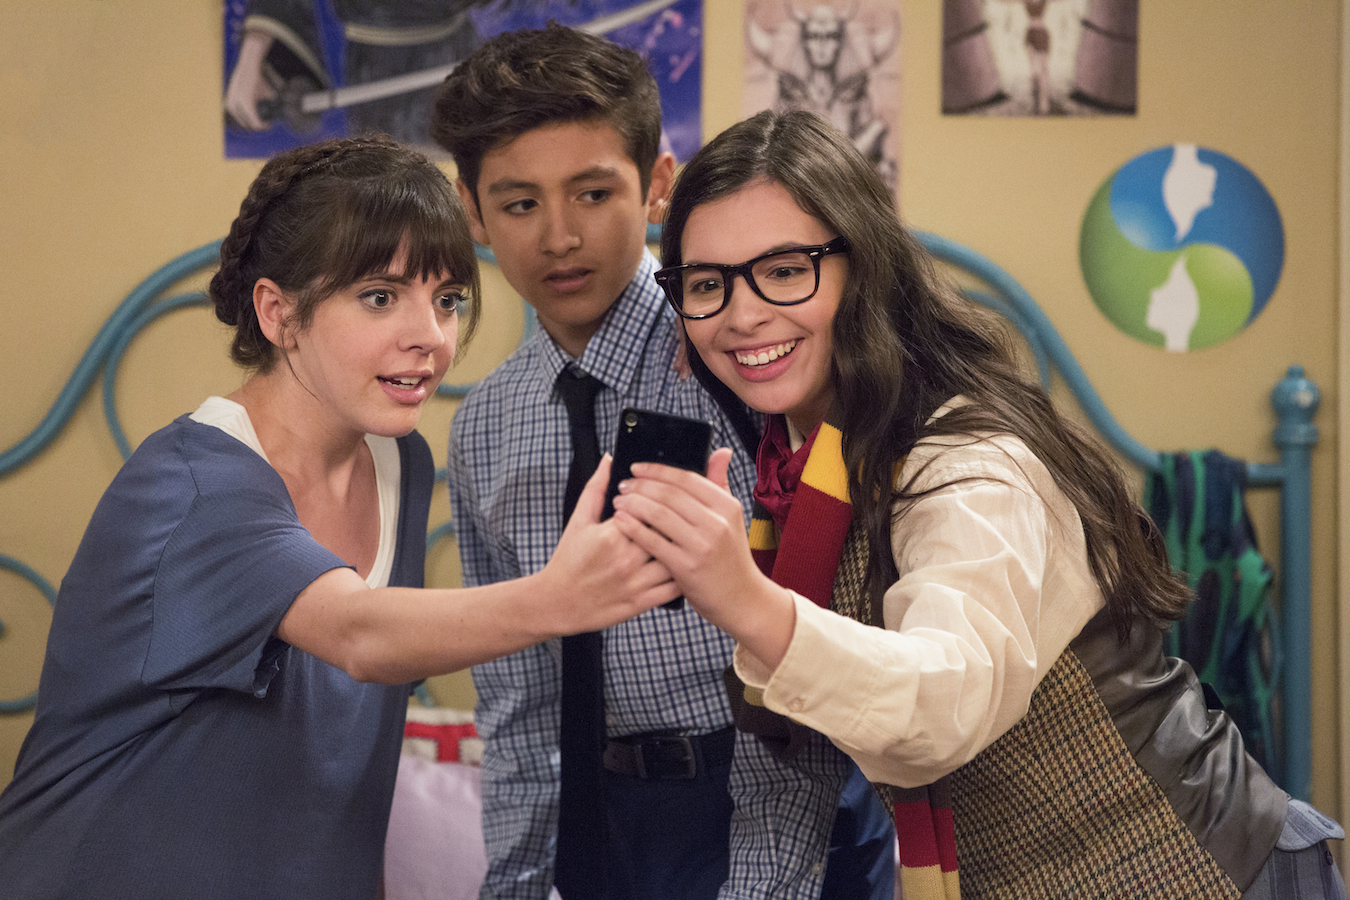 'One Day at a Time' Writers Are Back at Work & the Internet Is Muy Excited